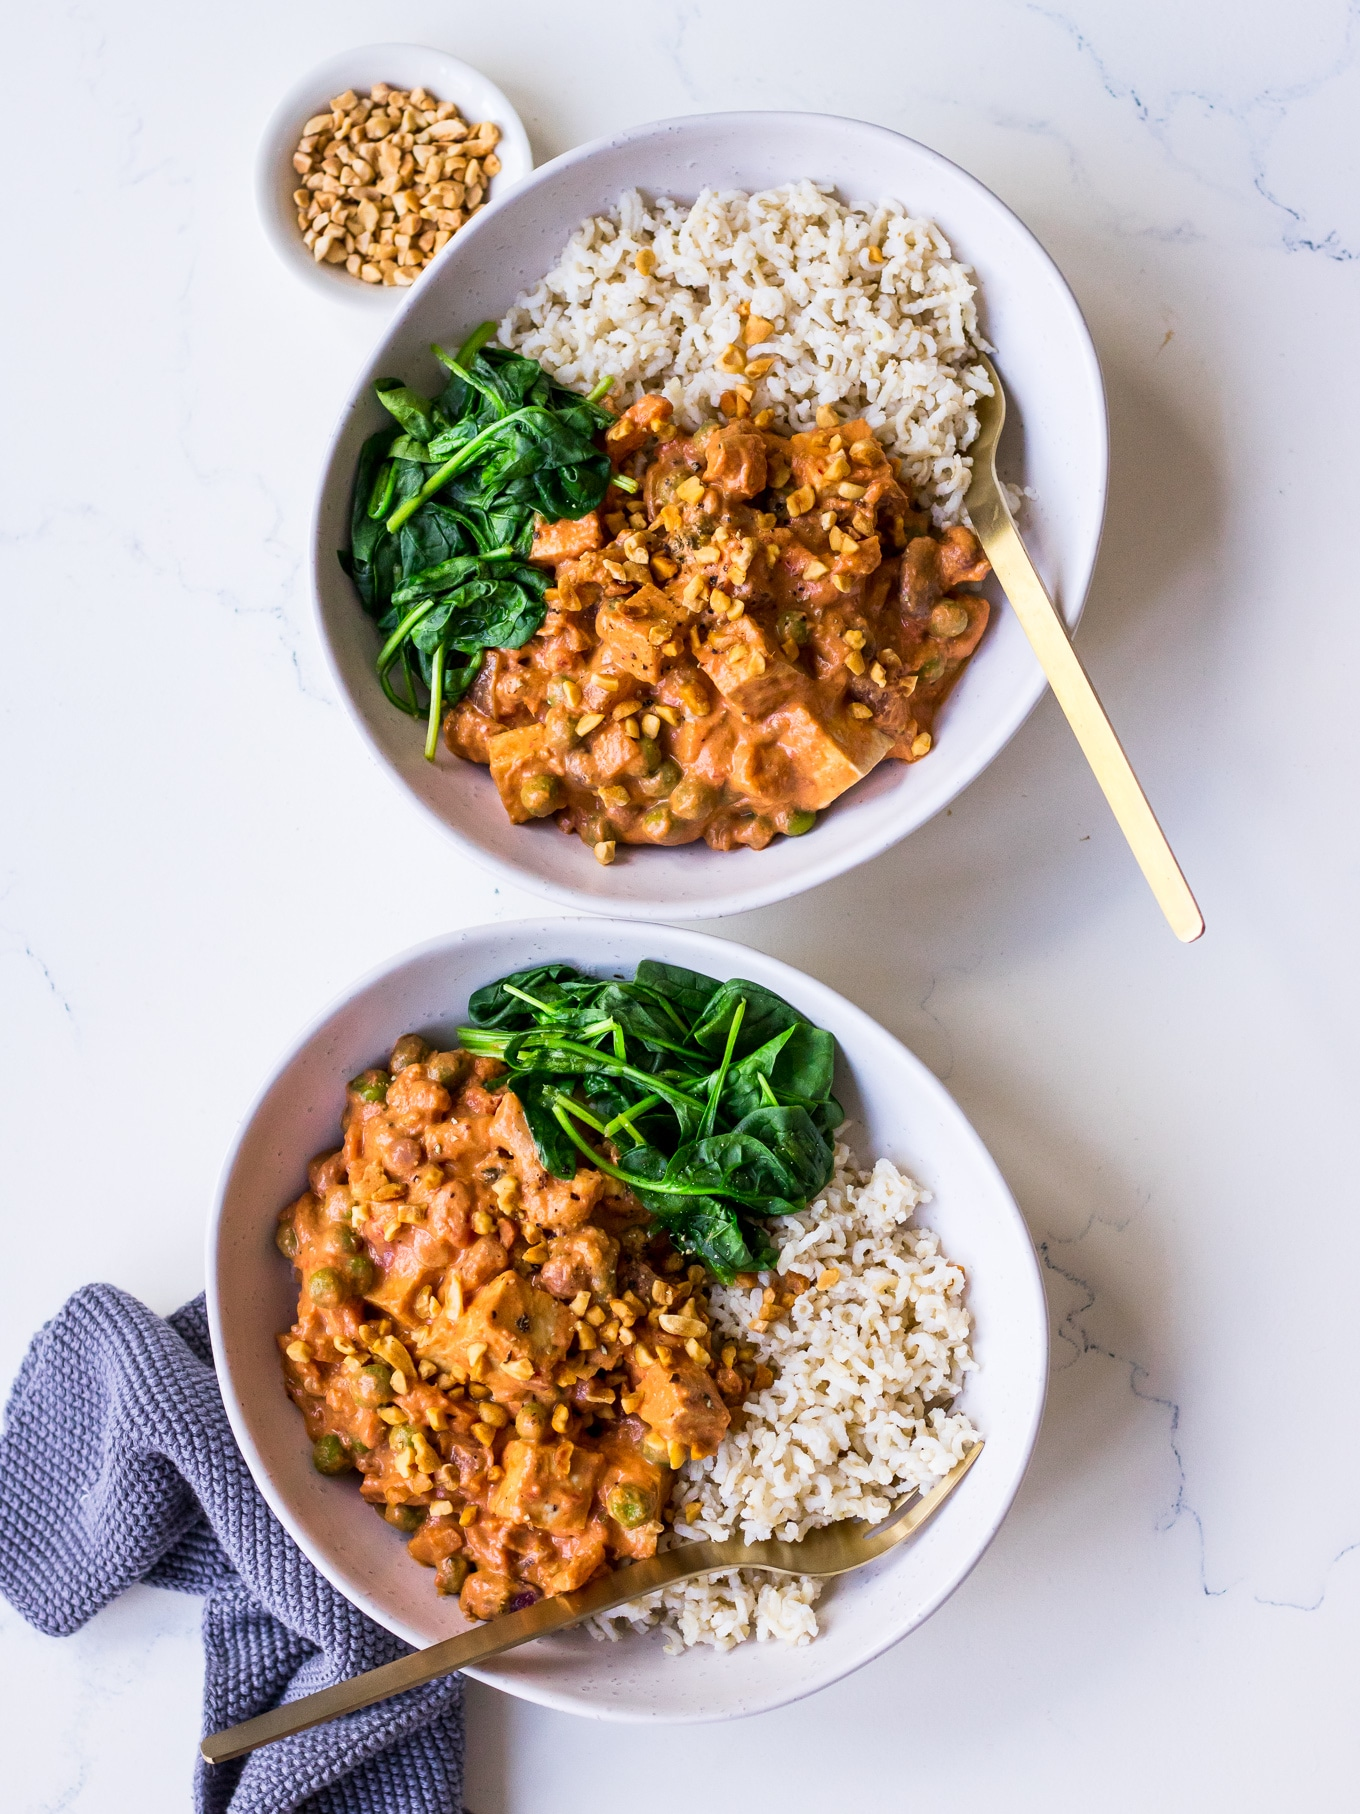 Two bowls with vegetarian curry, brown rice and spinach